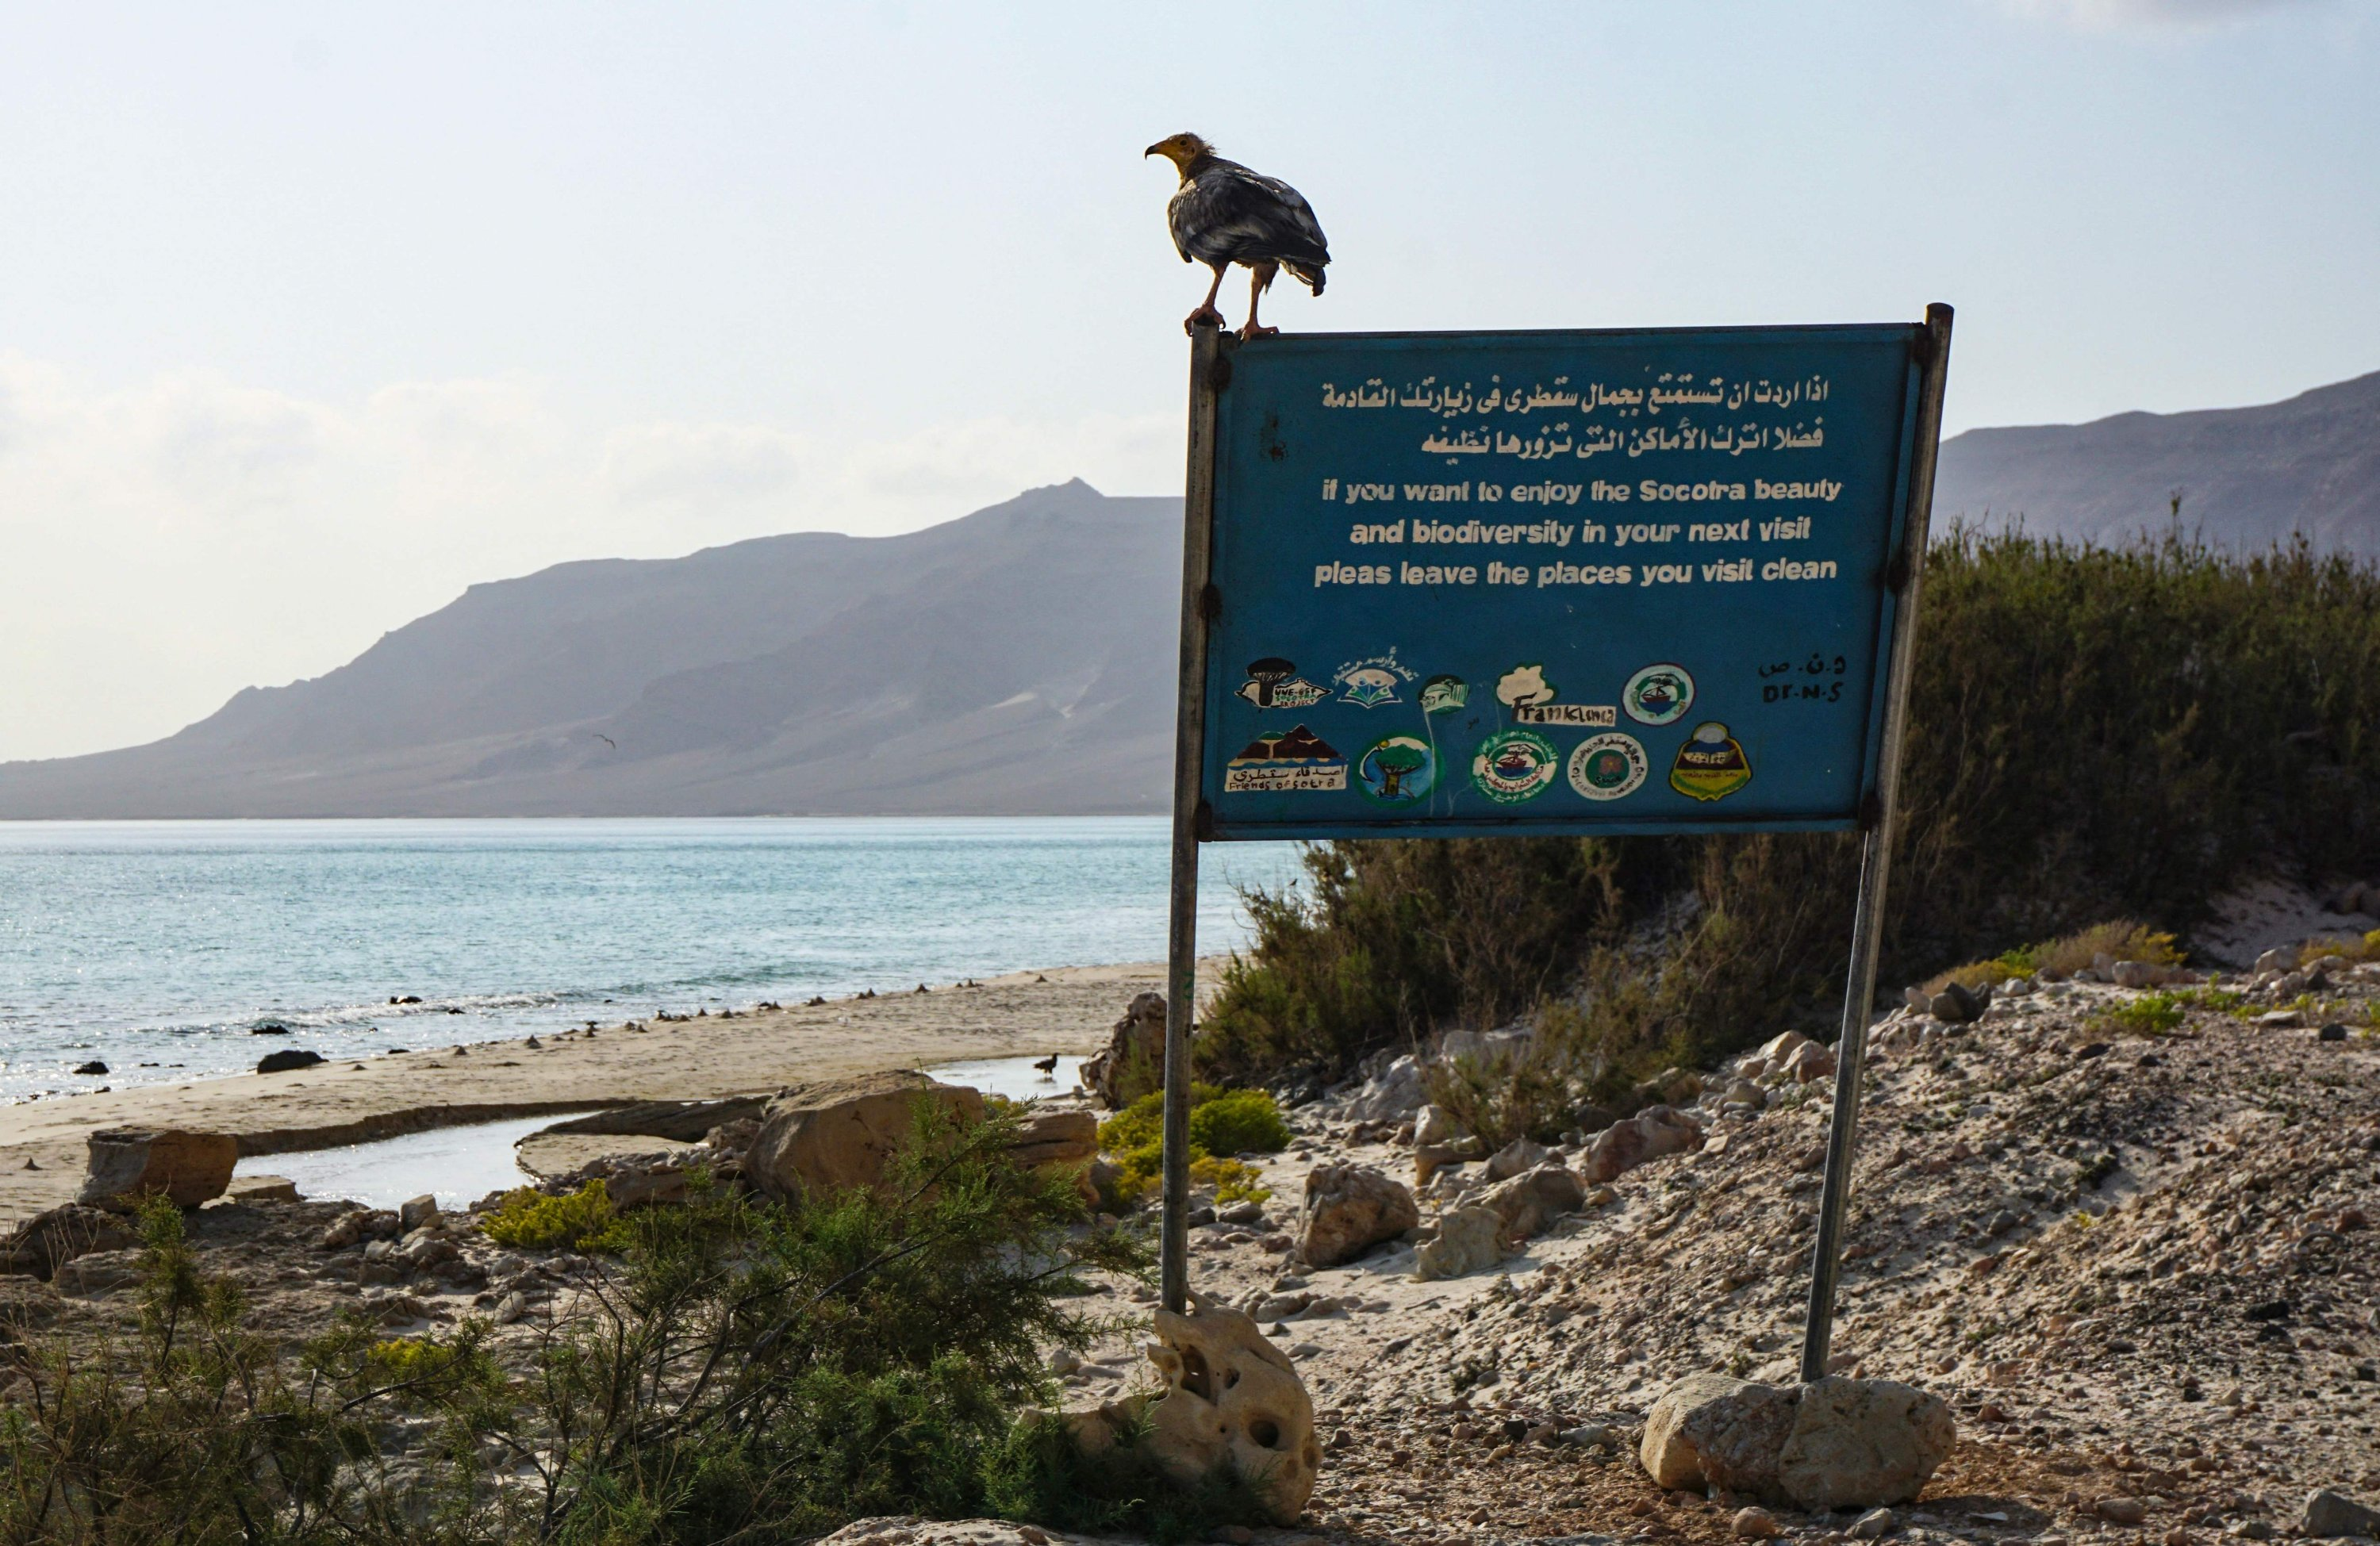 An Egyptian Vulture, an endangered bird, sits on a sign promoting the importance of the protection of nature at Aher in the northeast of the Yemeni island of Socotra, April 13, 2021. (AFP Photo)